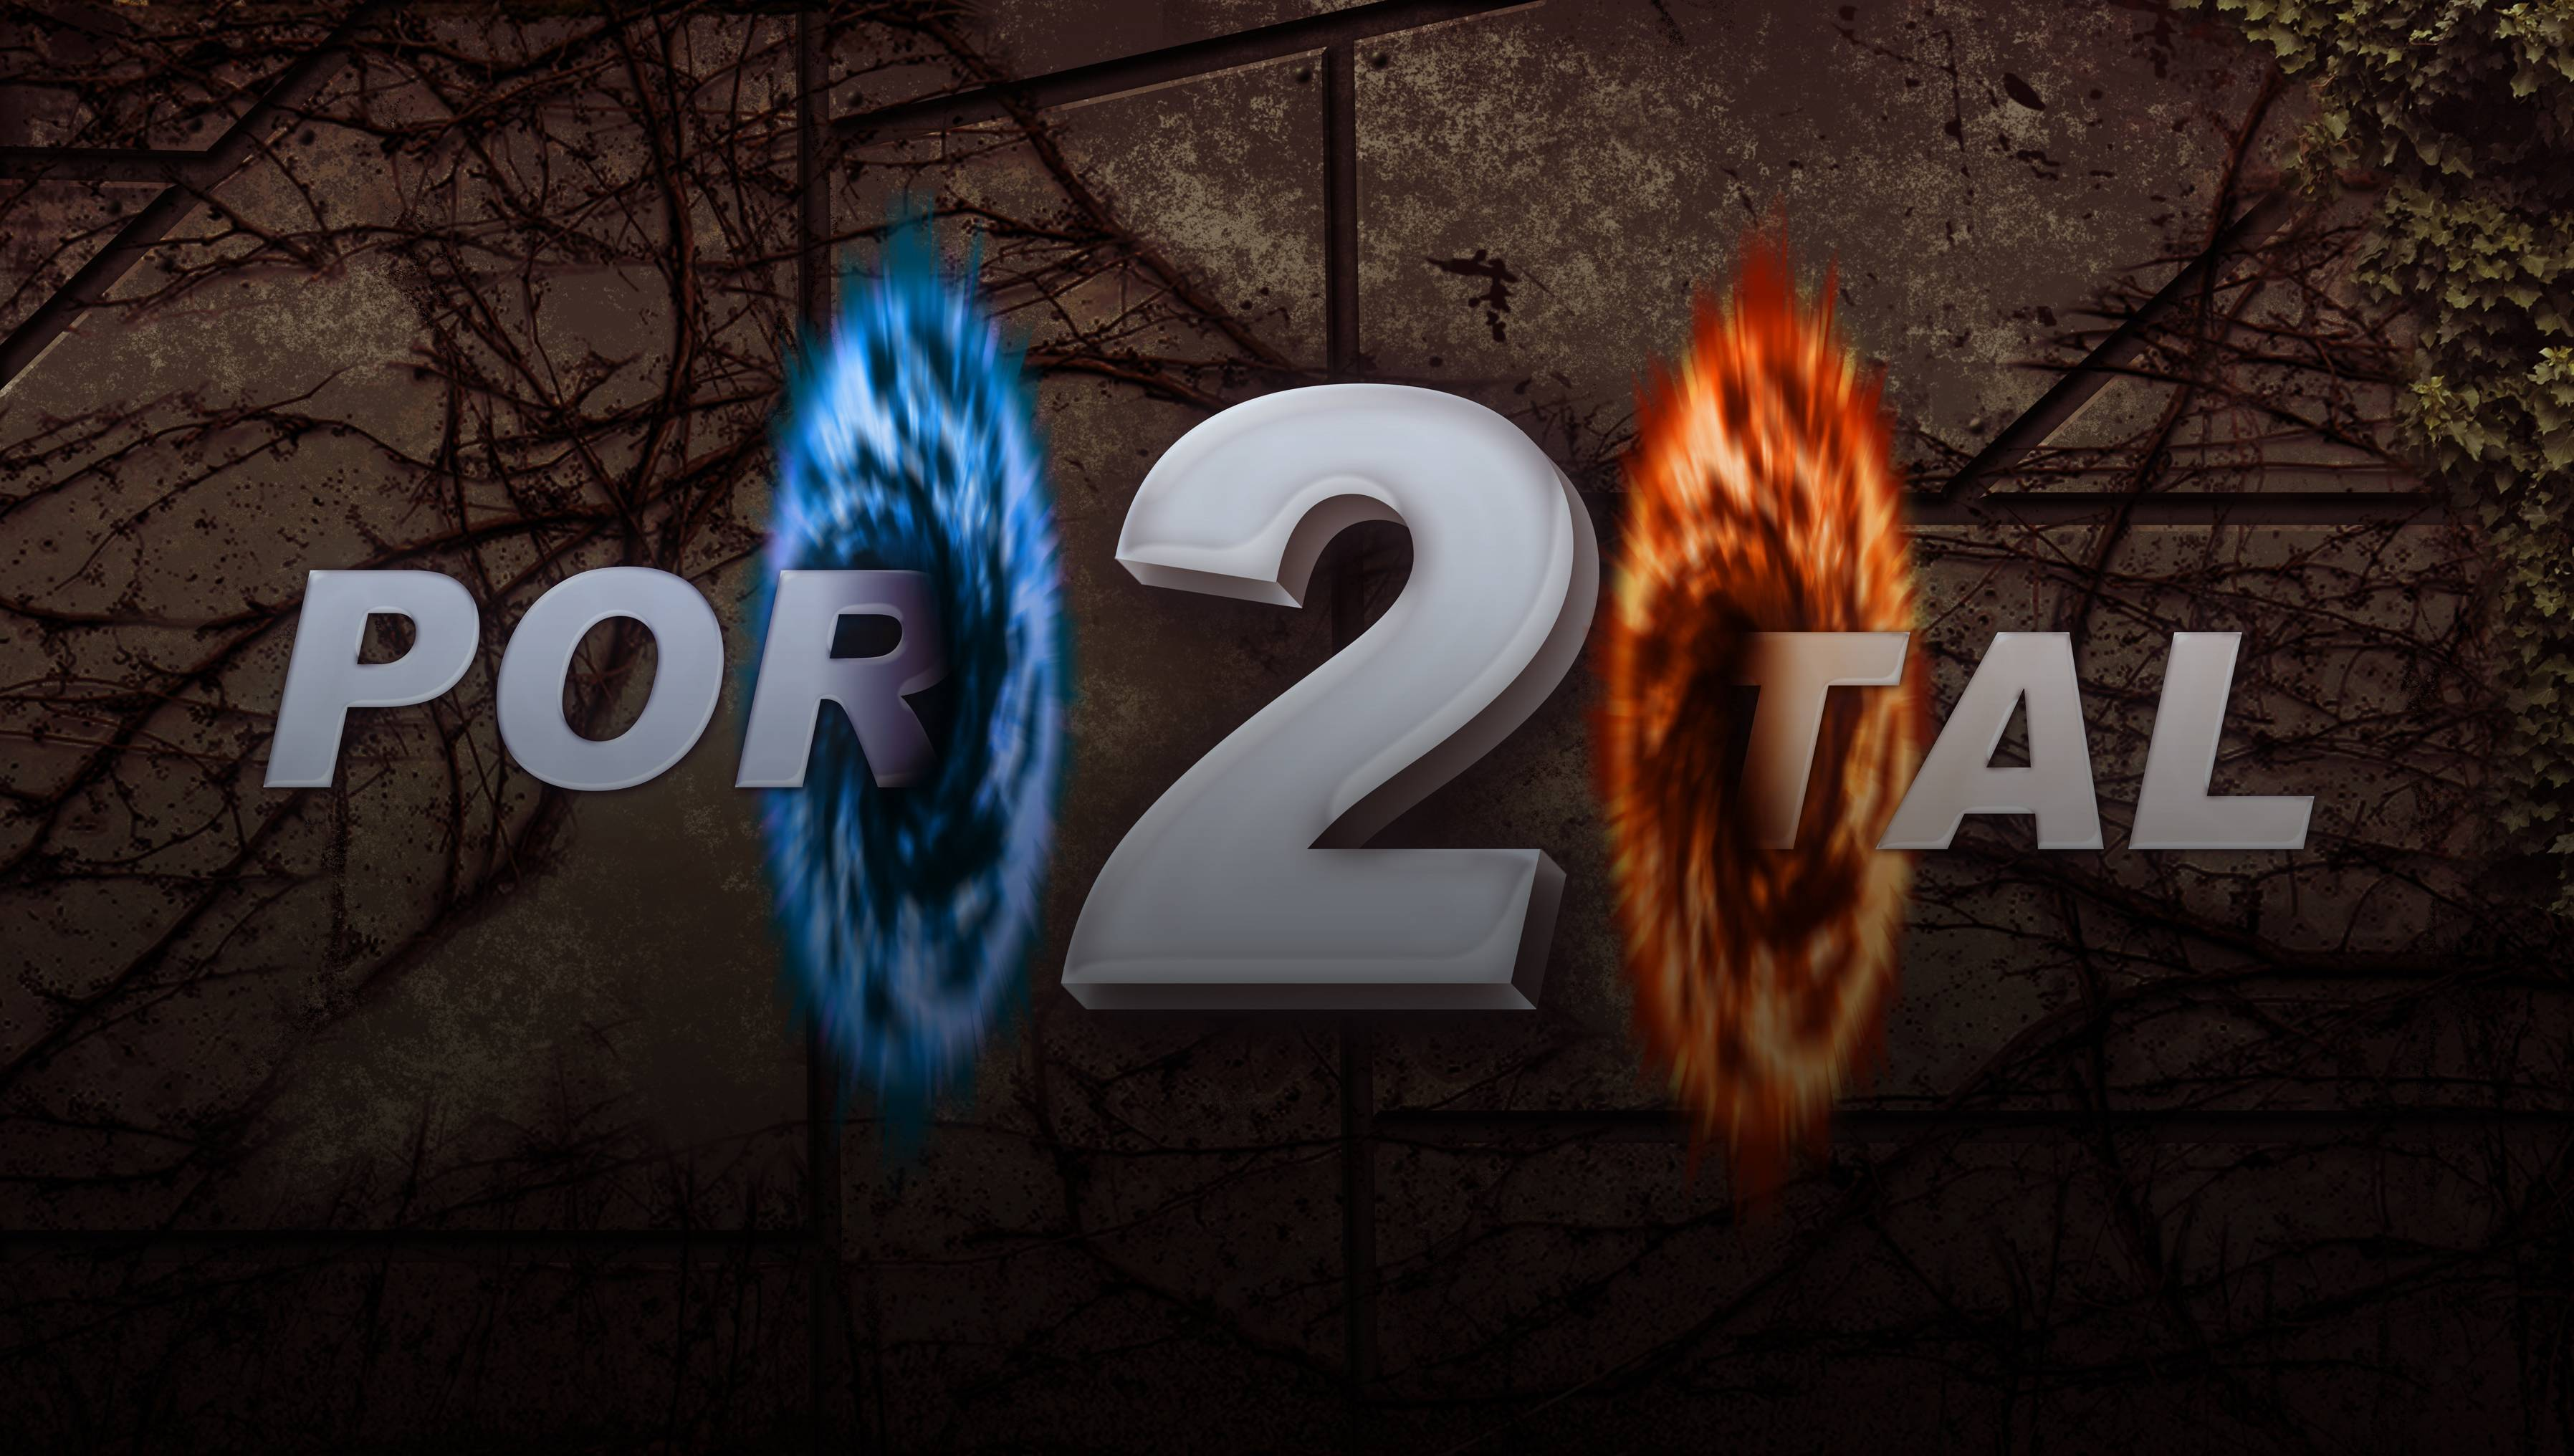 portal 2 wallpaper dual - photo #32